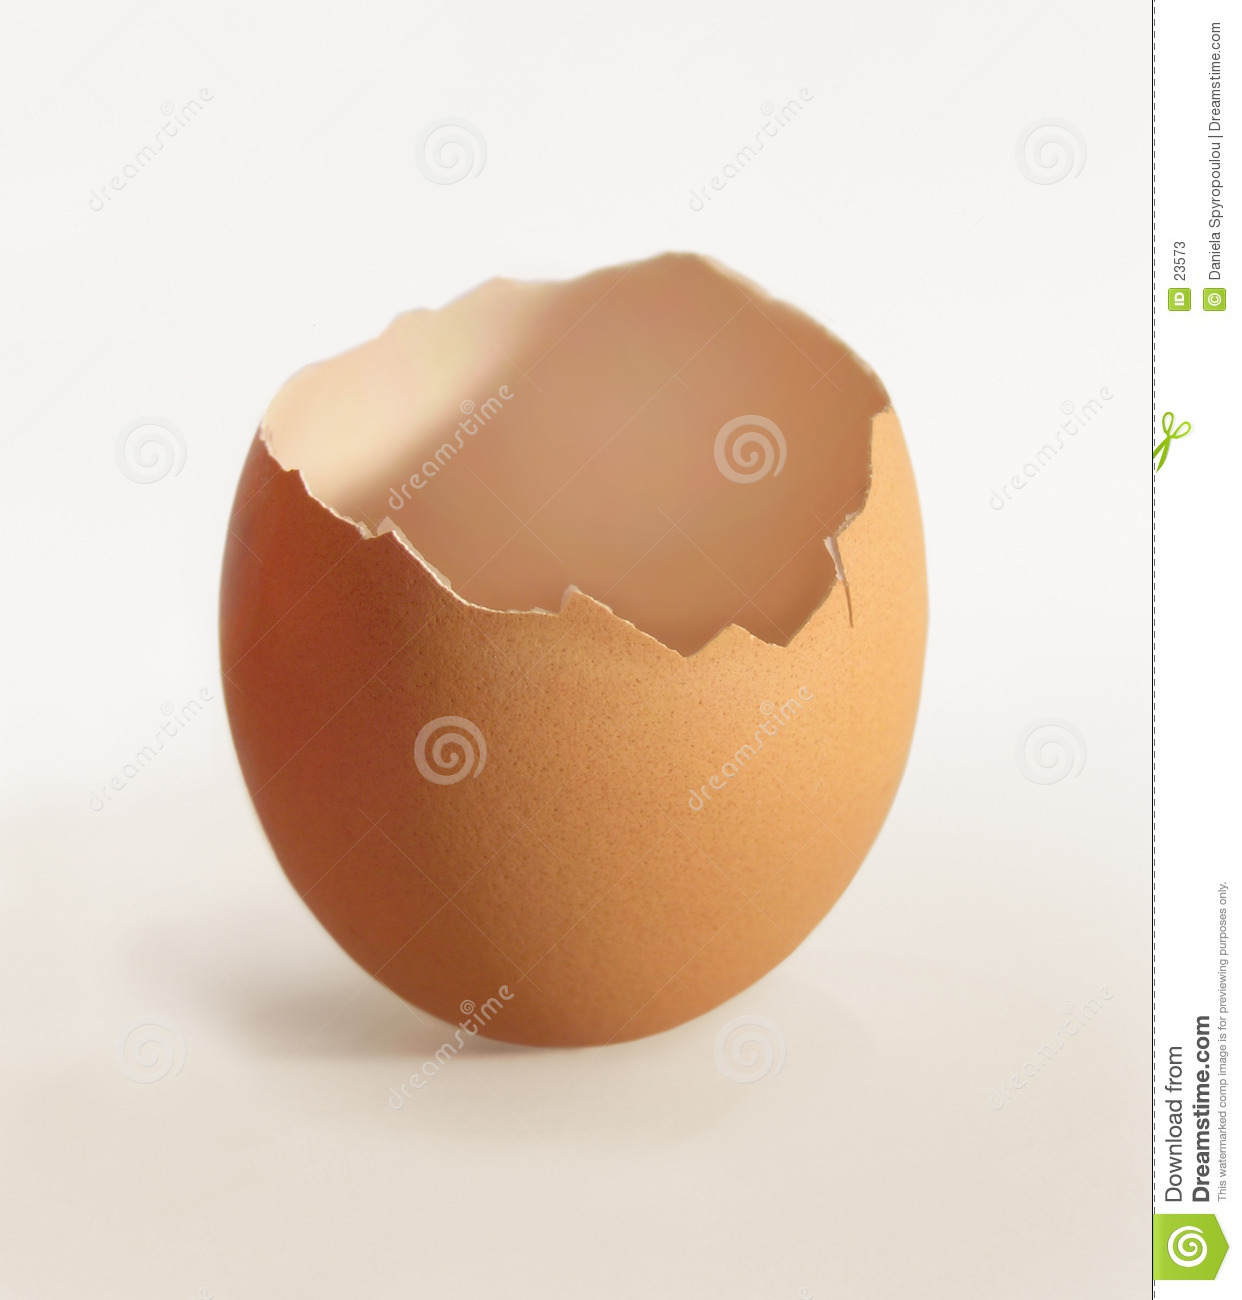 Cracked egg shell clipart image black and white download Cracked Eggshell Clipart - filexo image black and white download